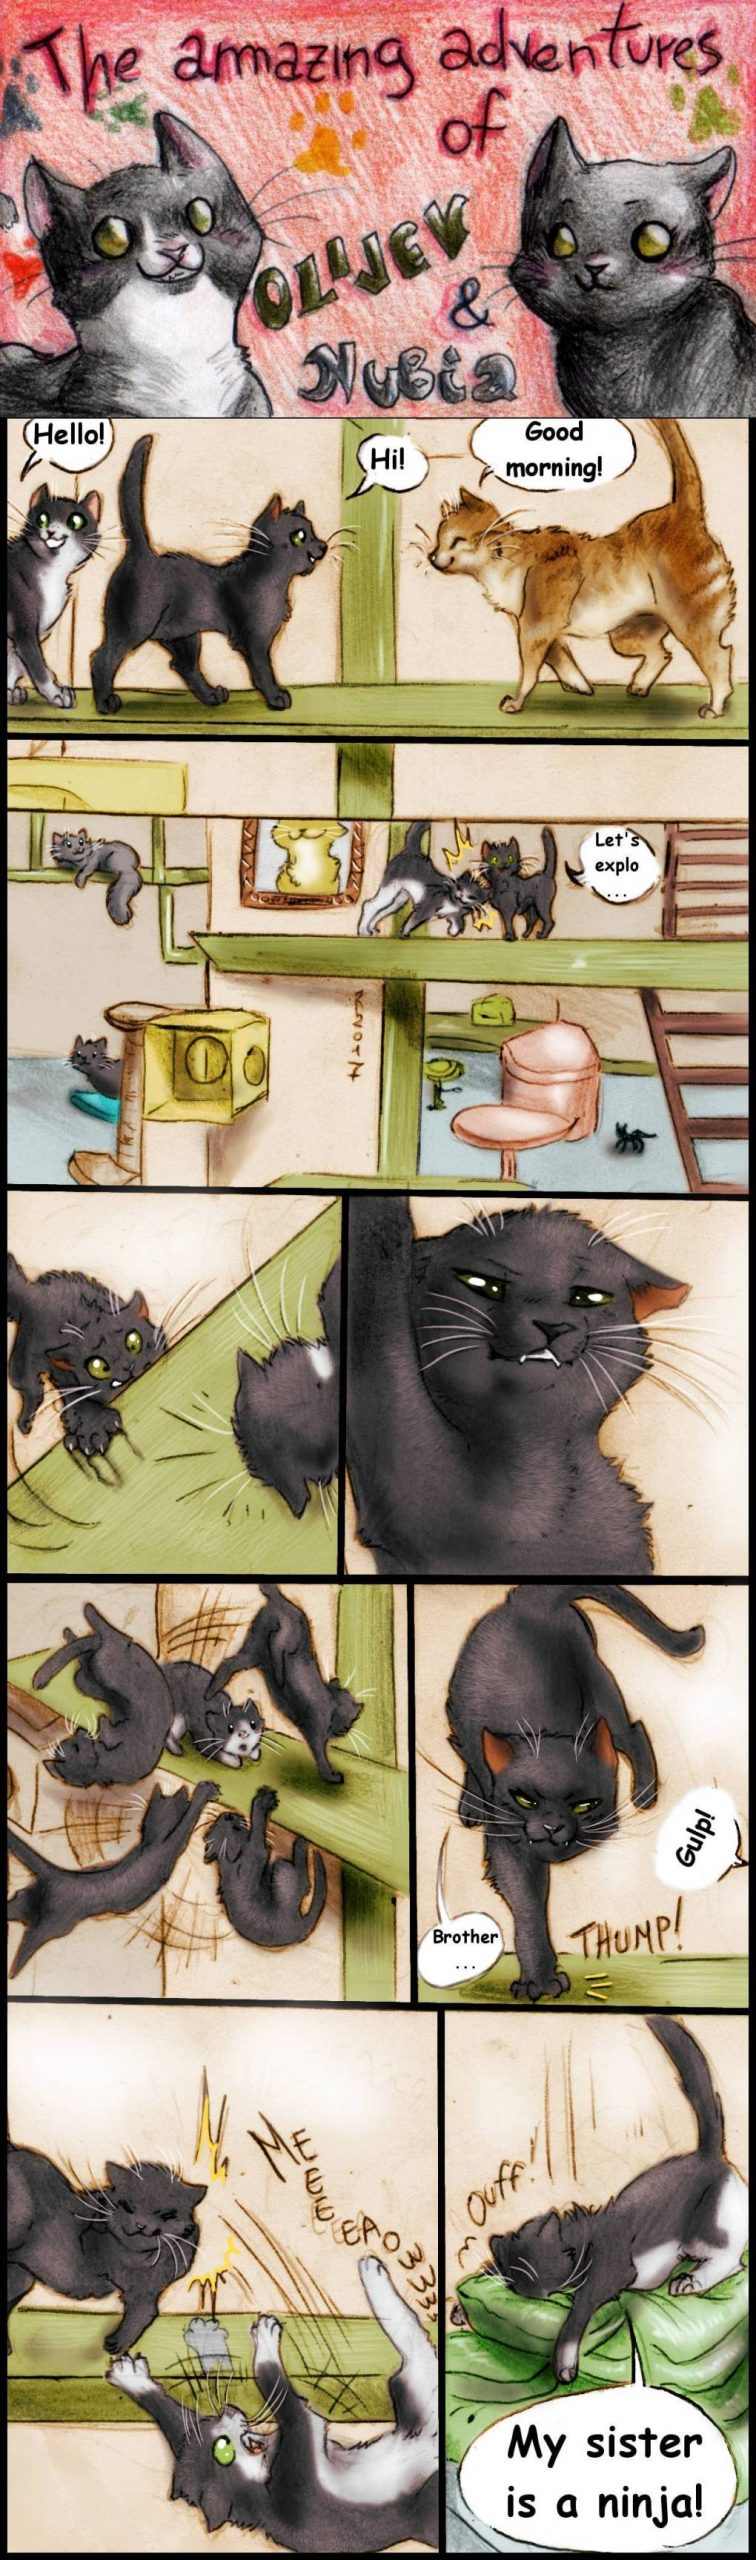 Blast From the Past: Visit to the Cat Cafe